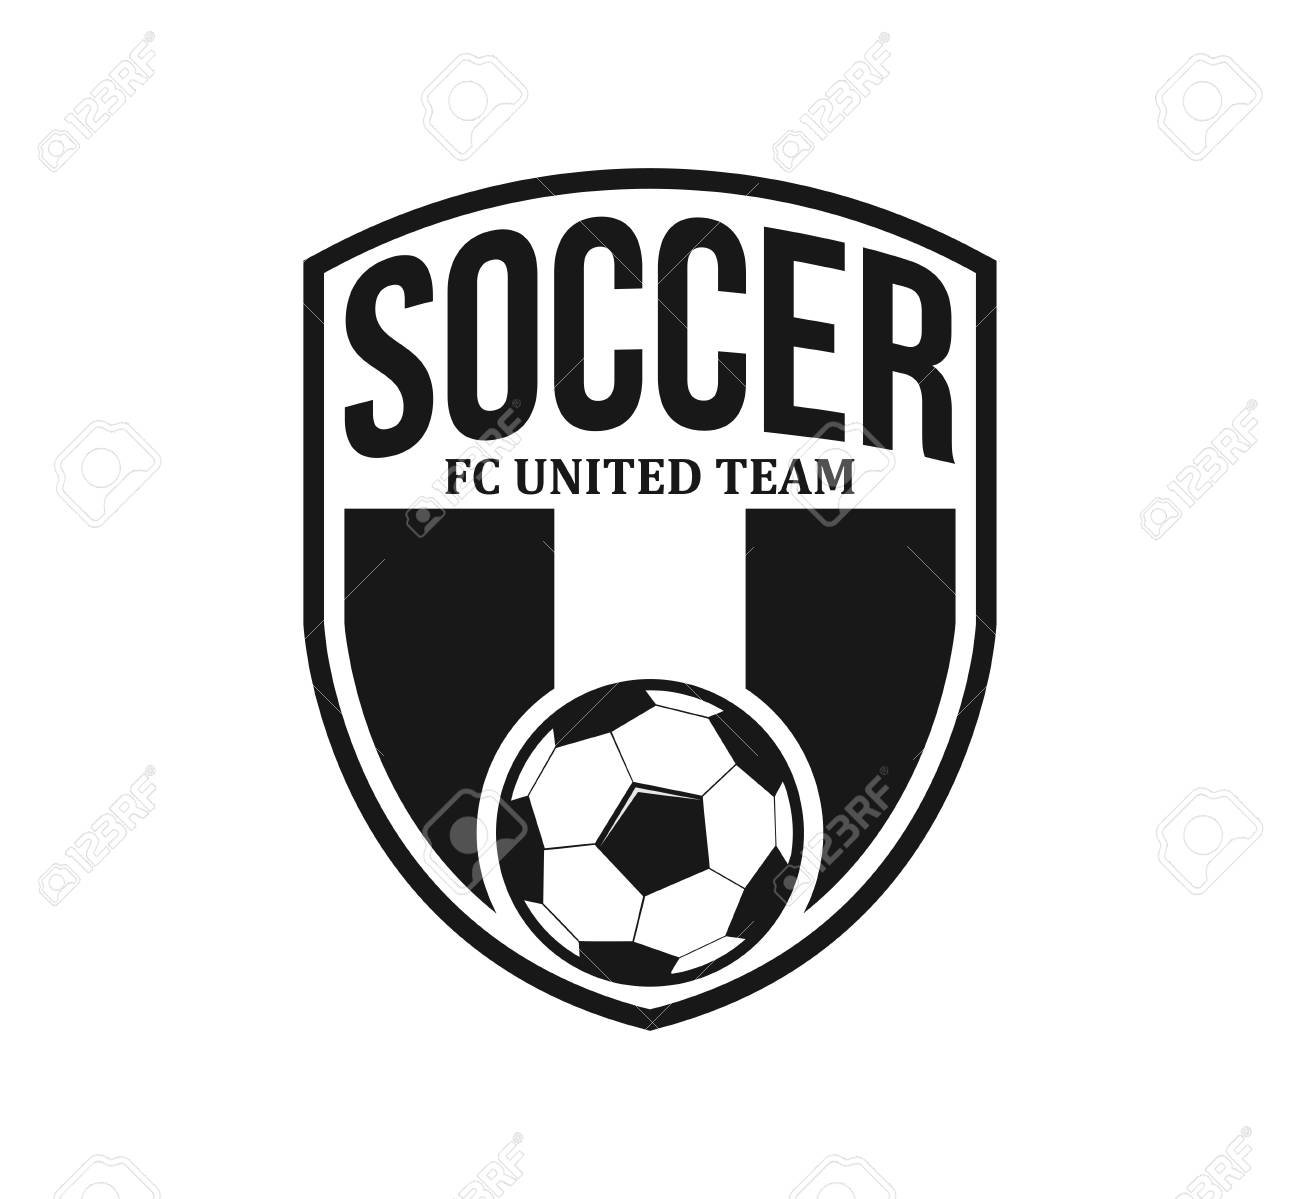 soccer football crest emblem vector logo design template inspiration..  royalty free cliparts, vectors, and stock illustration. image 110848071.  123rf